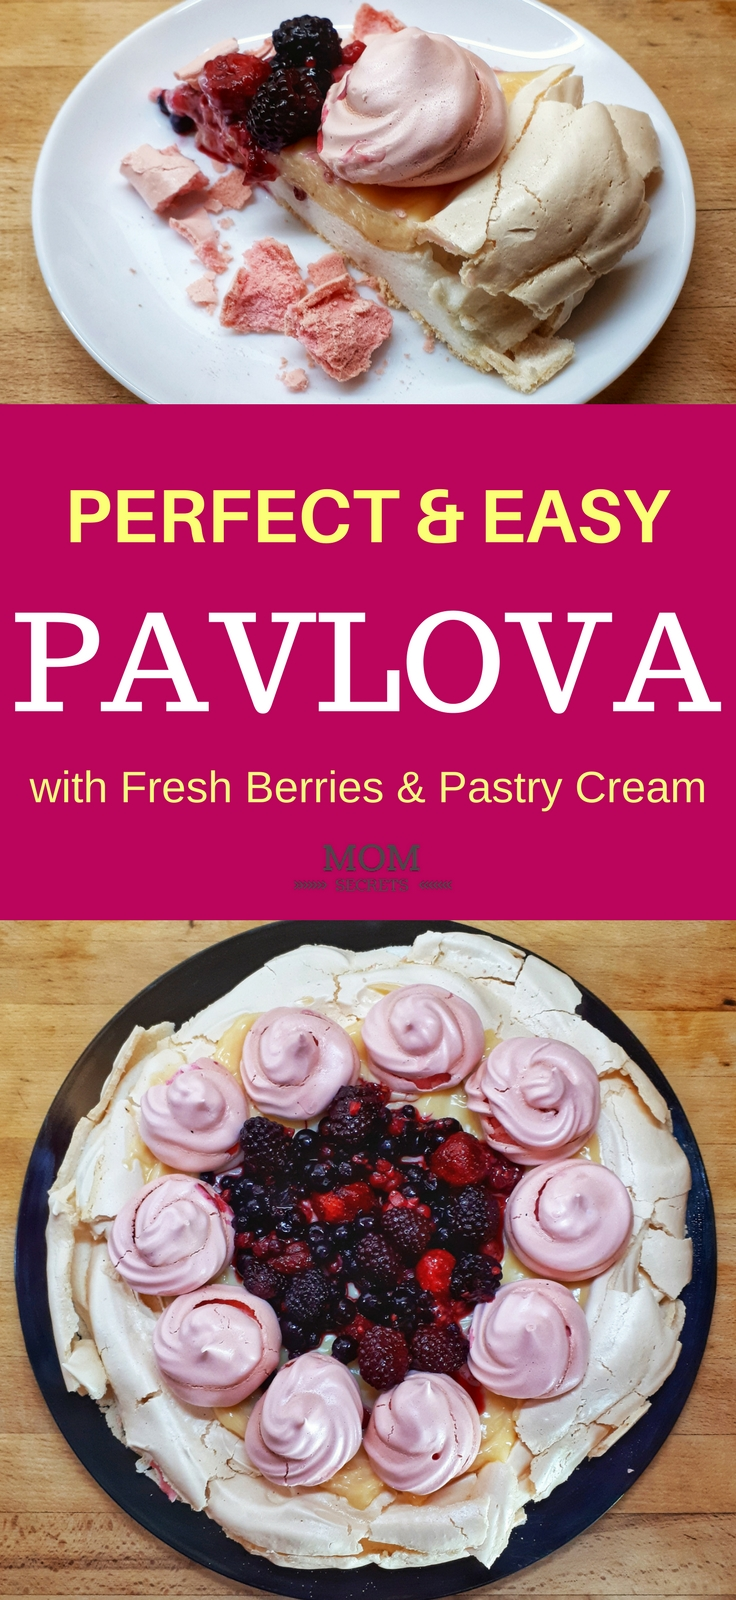 Pavlova is the most elegant dessert in the whole world. This pavlova recipe is so easy to make and the crispy-chewy merengue base is so yummy… it´s simple and just perfect to impress our guests.